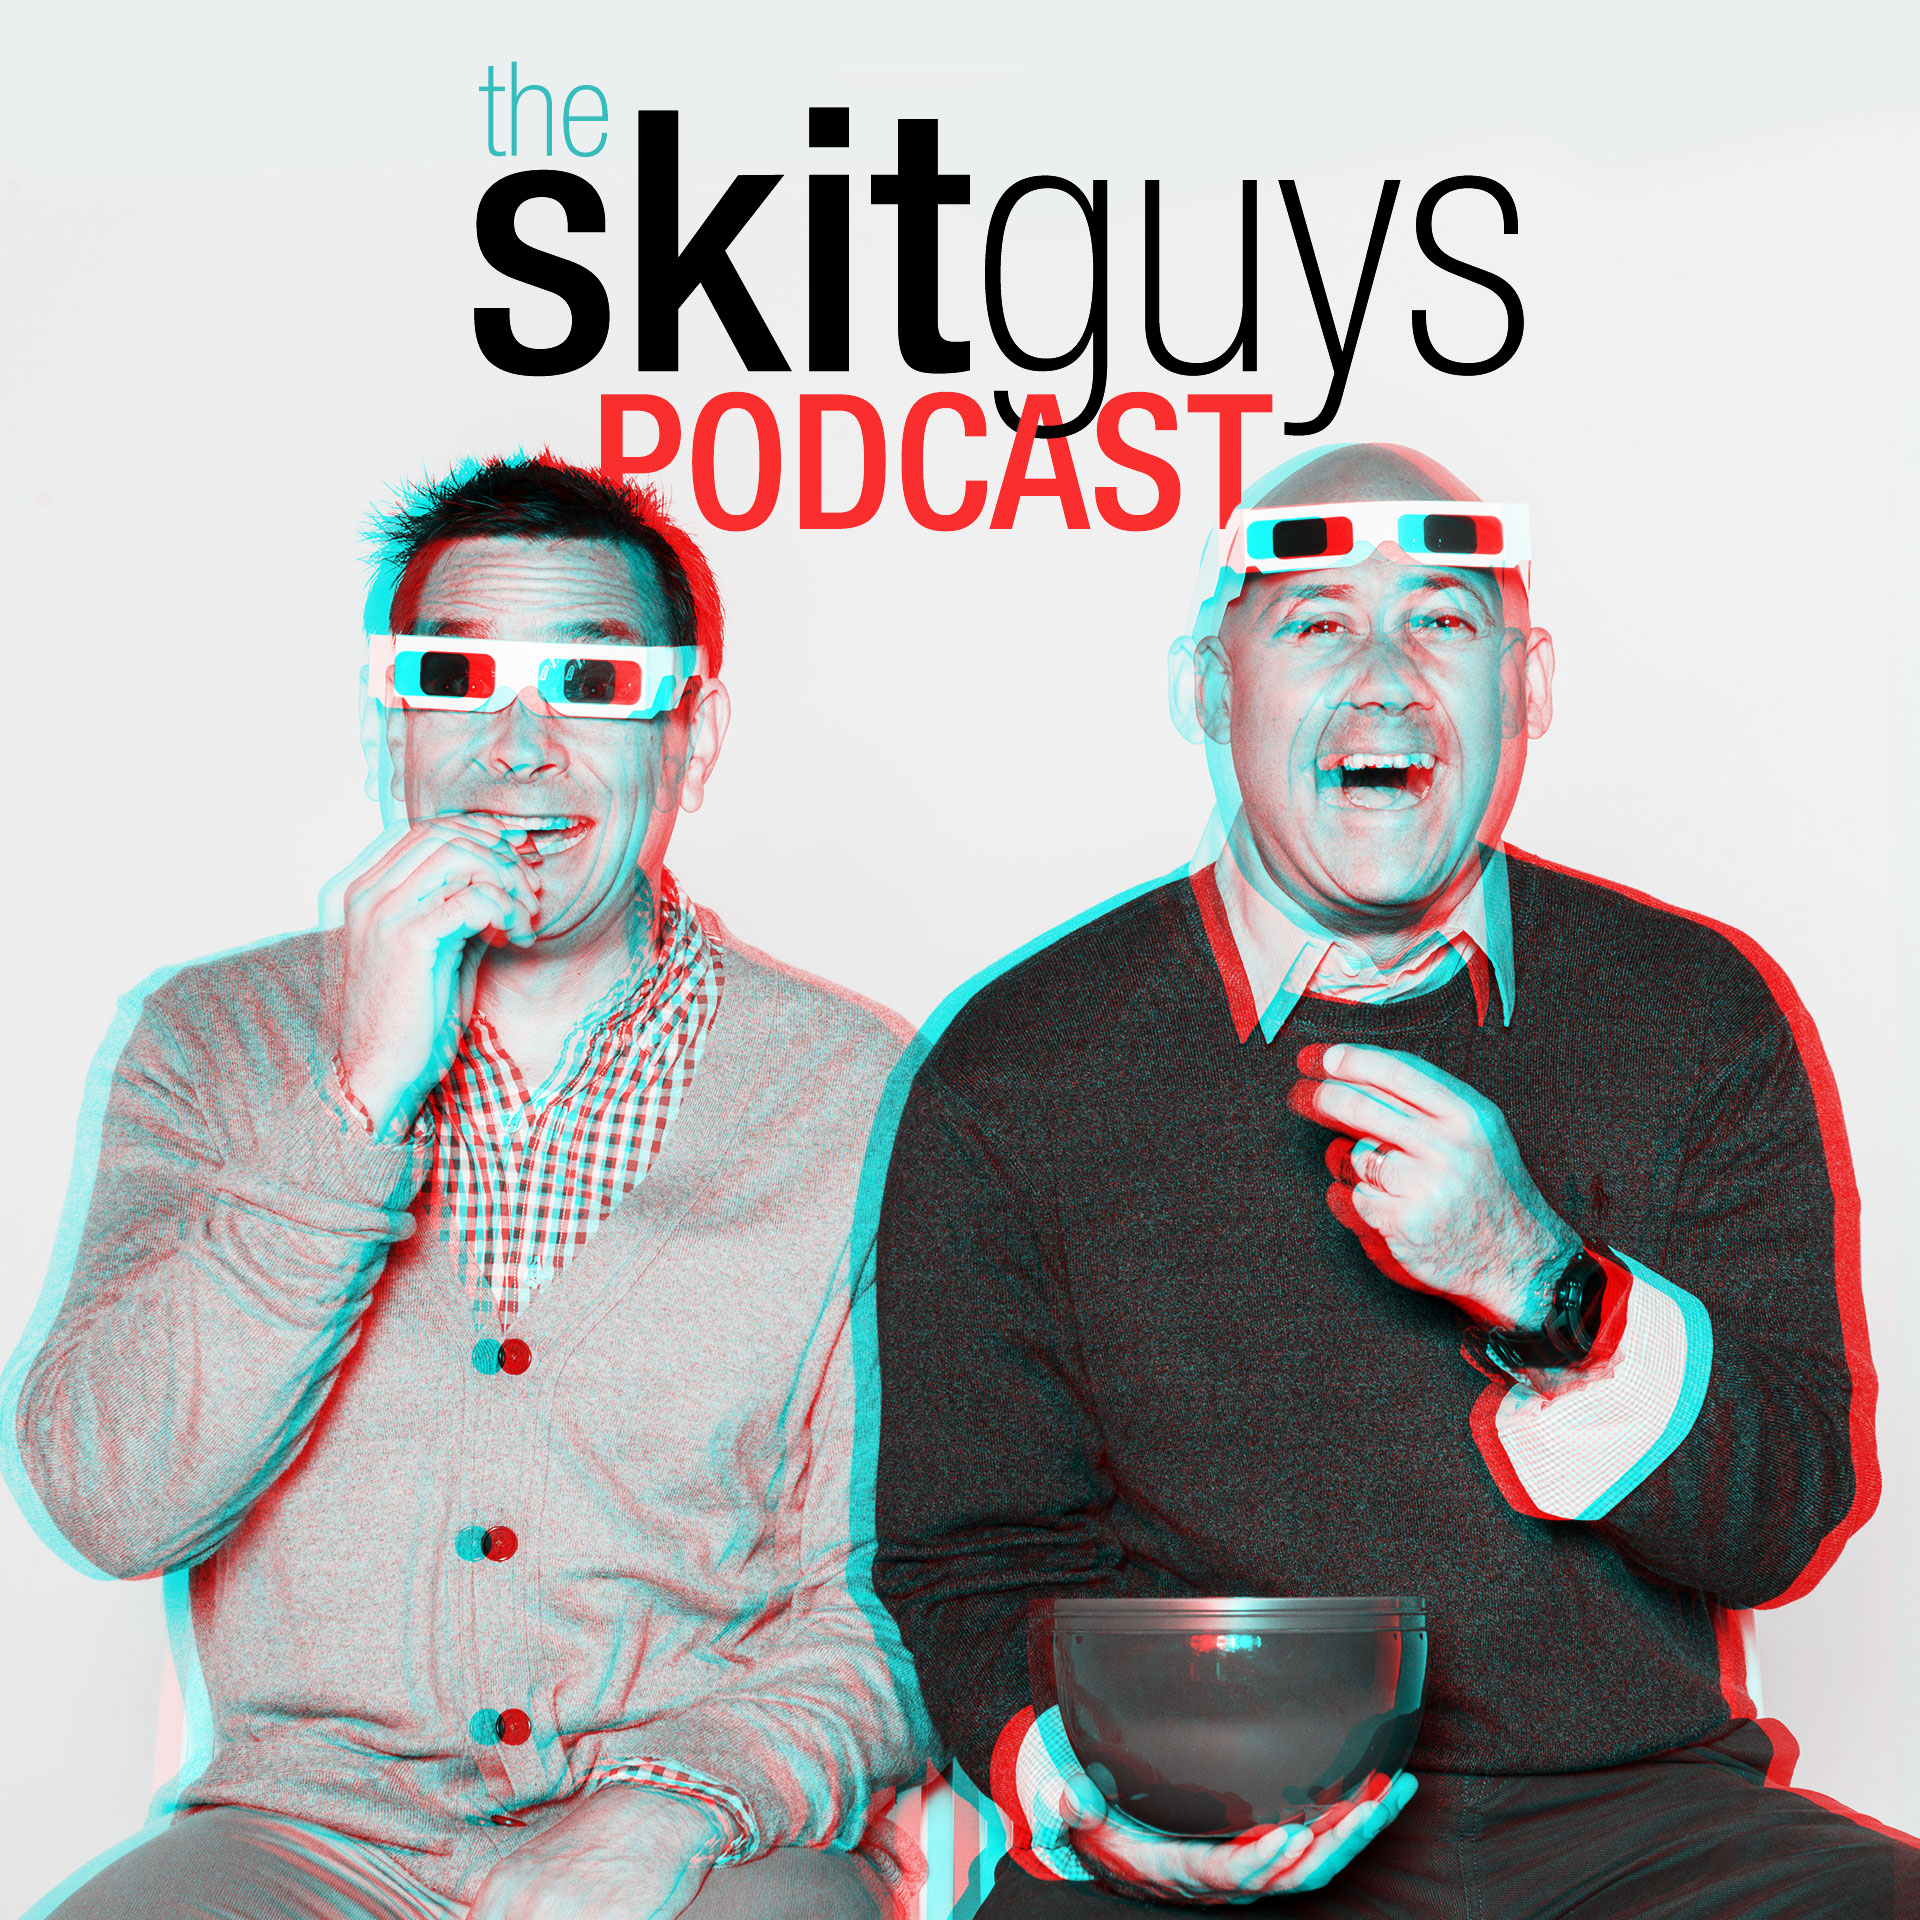 Skit Guys Podcast